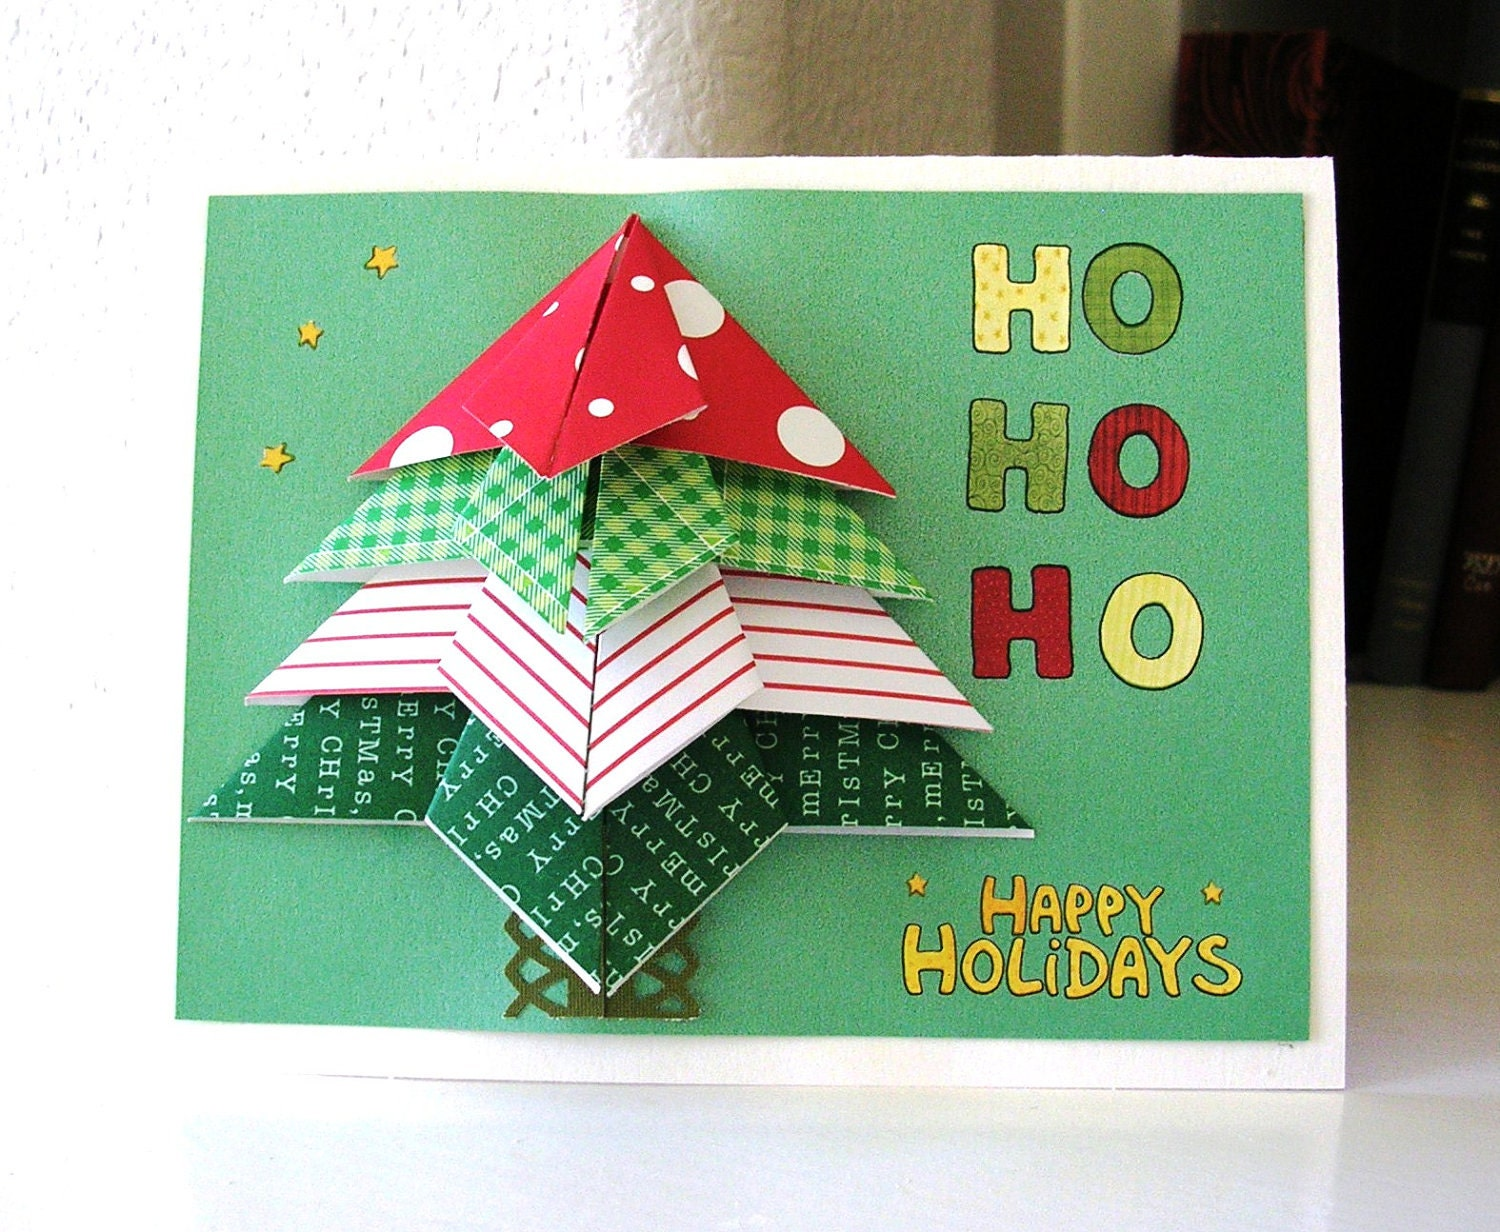 Christmas Card Handmade Origami Tree Christmas Card - photo#13